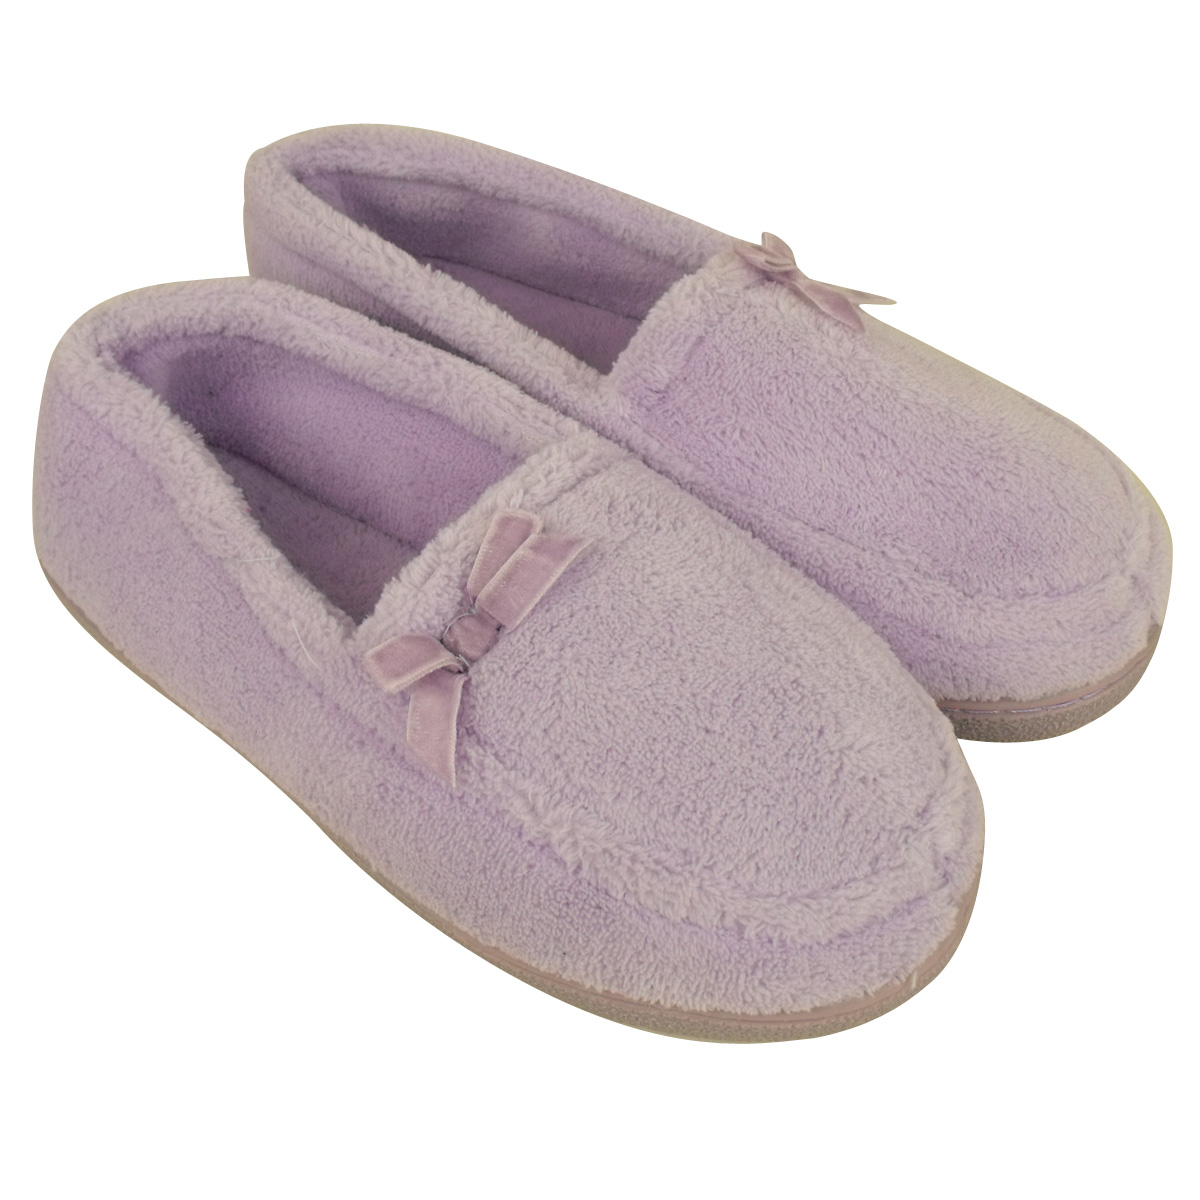 Free Shipping with $50 purchase. Explore details, ratings and reviews for our slippers for Women at 24software.ml Our high quality women's shoes are built to last and made for the shared joy of the outdoors.